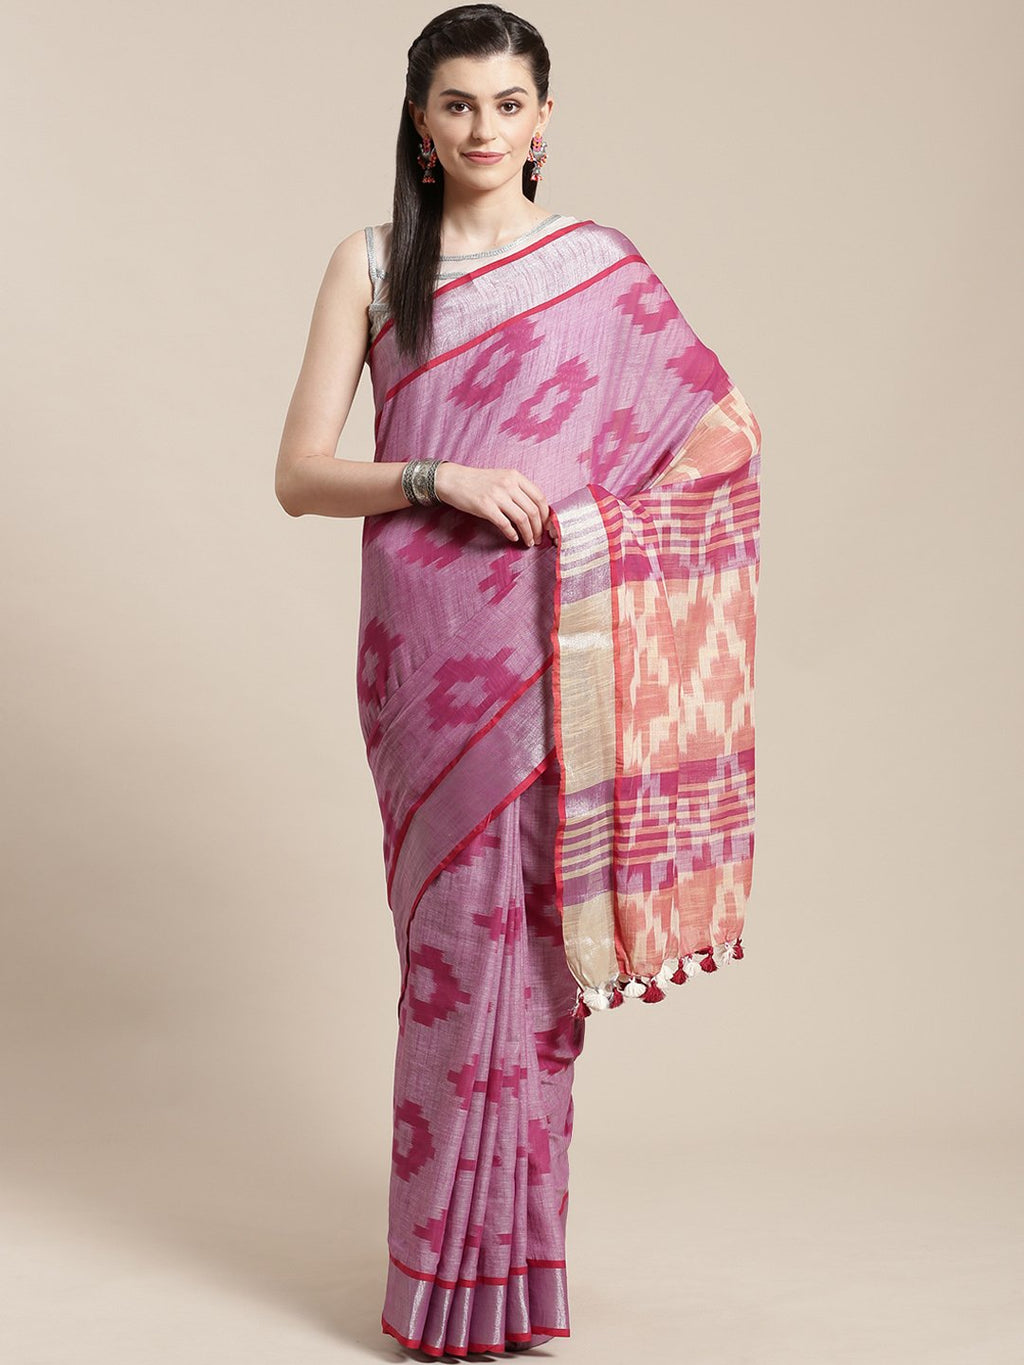 Linen Handwoven Saree and Blouse-Saree-Kalakari India-ALBGSA0047-Hand Woven, Linen, Sarees, Sustainable Fabrics, Traditional Weave-[Linen,Ethnic,wear,Fashionista,Handloom,Handicraft,Indigo,blockprint,block,print,Cotton,Chanderi,Blue, latest,classy,party,bollywood,trendy,summer,style,traditional,formal,elegant,unique,style,hand,block,print, dabu,booti,gift,present,glamorous,affordable,collectible,Sari,Saree,printed, holi, Diwali, birthday, anniversary, sustainable, organic, scarf, online, low pri